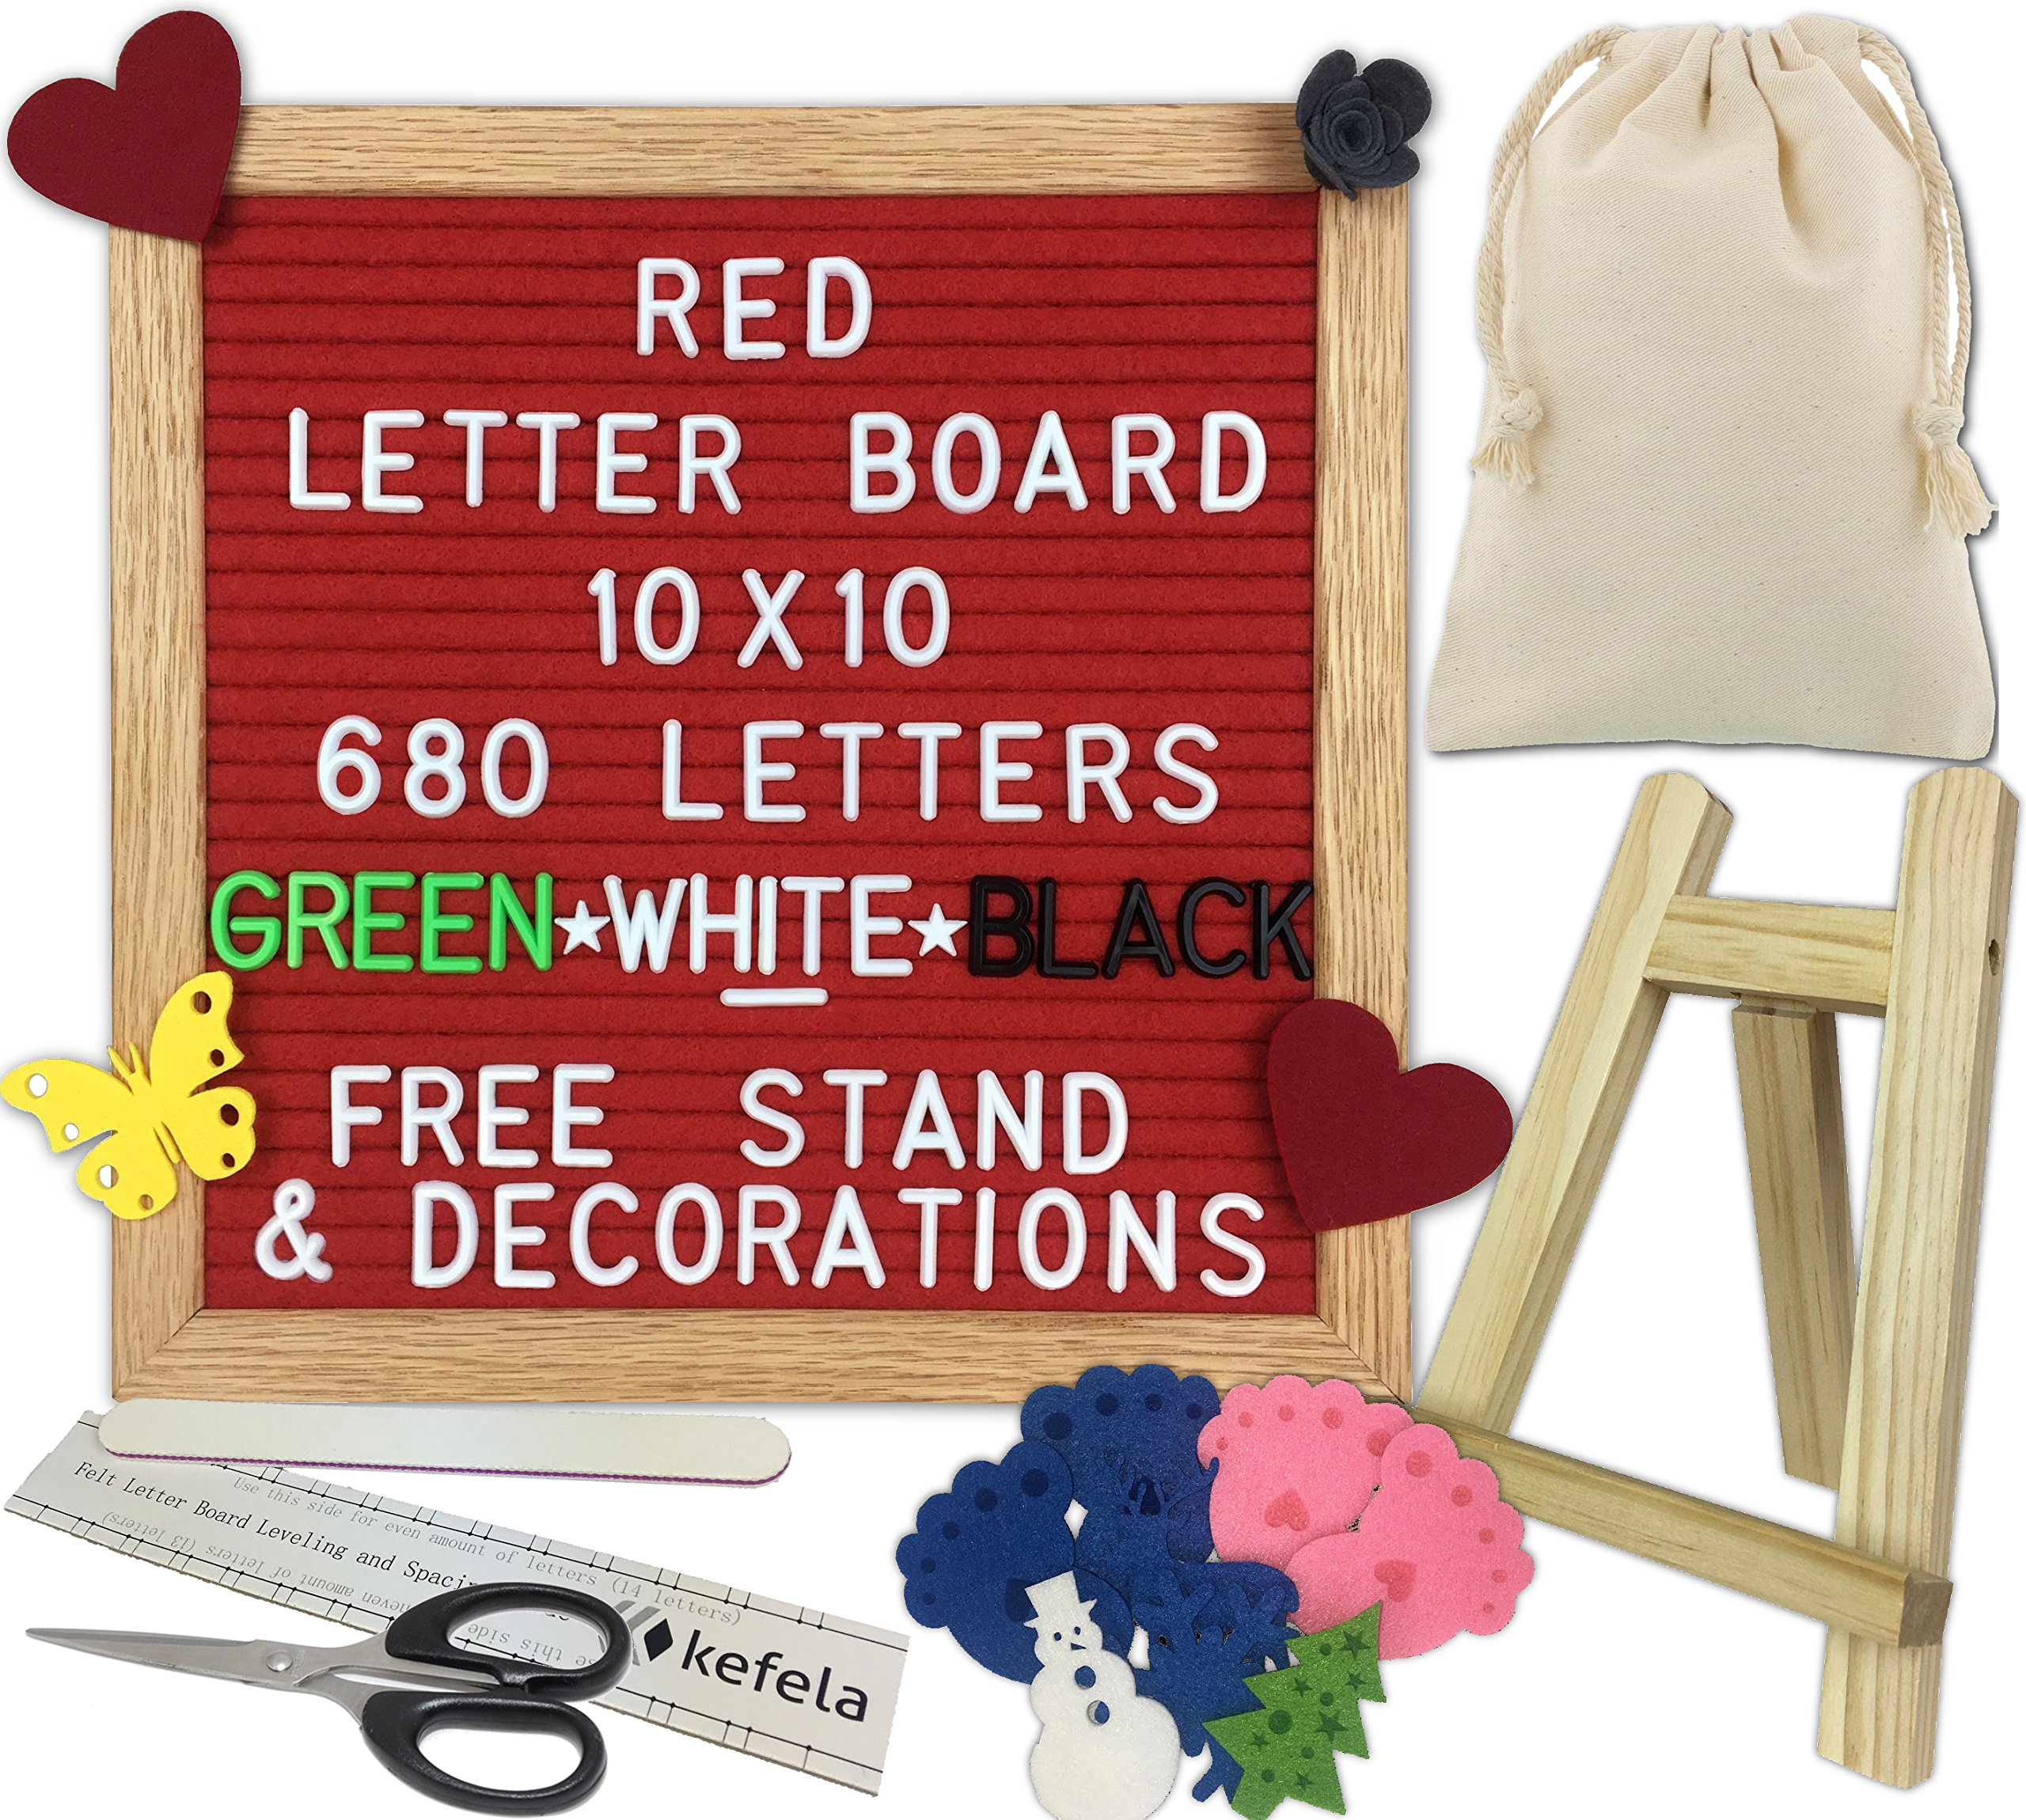 Red Felt Letter Board 10x10 - Stand, Decorations, Bag, Scissors, File, Guide - Vintage Oak Frame & 680 Changeable Green White Black Letters - for Announcements, Gift, Photo Prop, Quotes, Toy, etc.